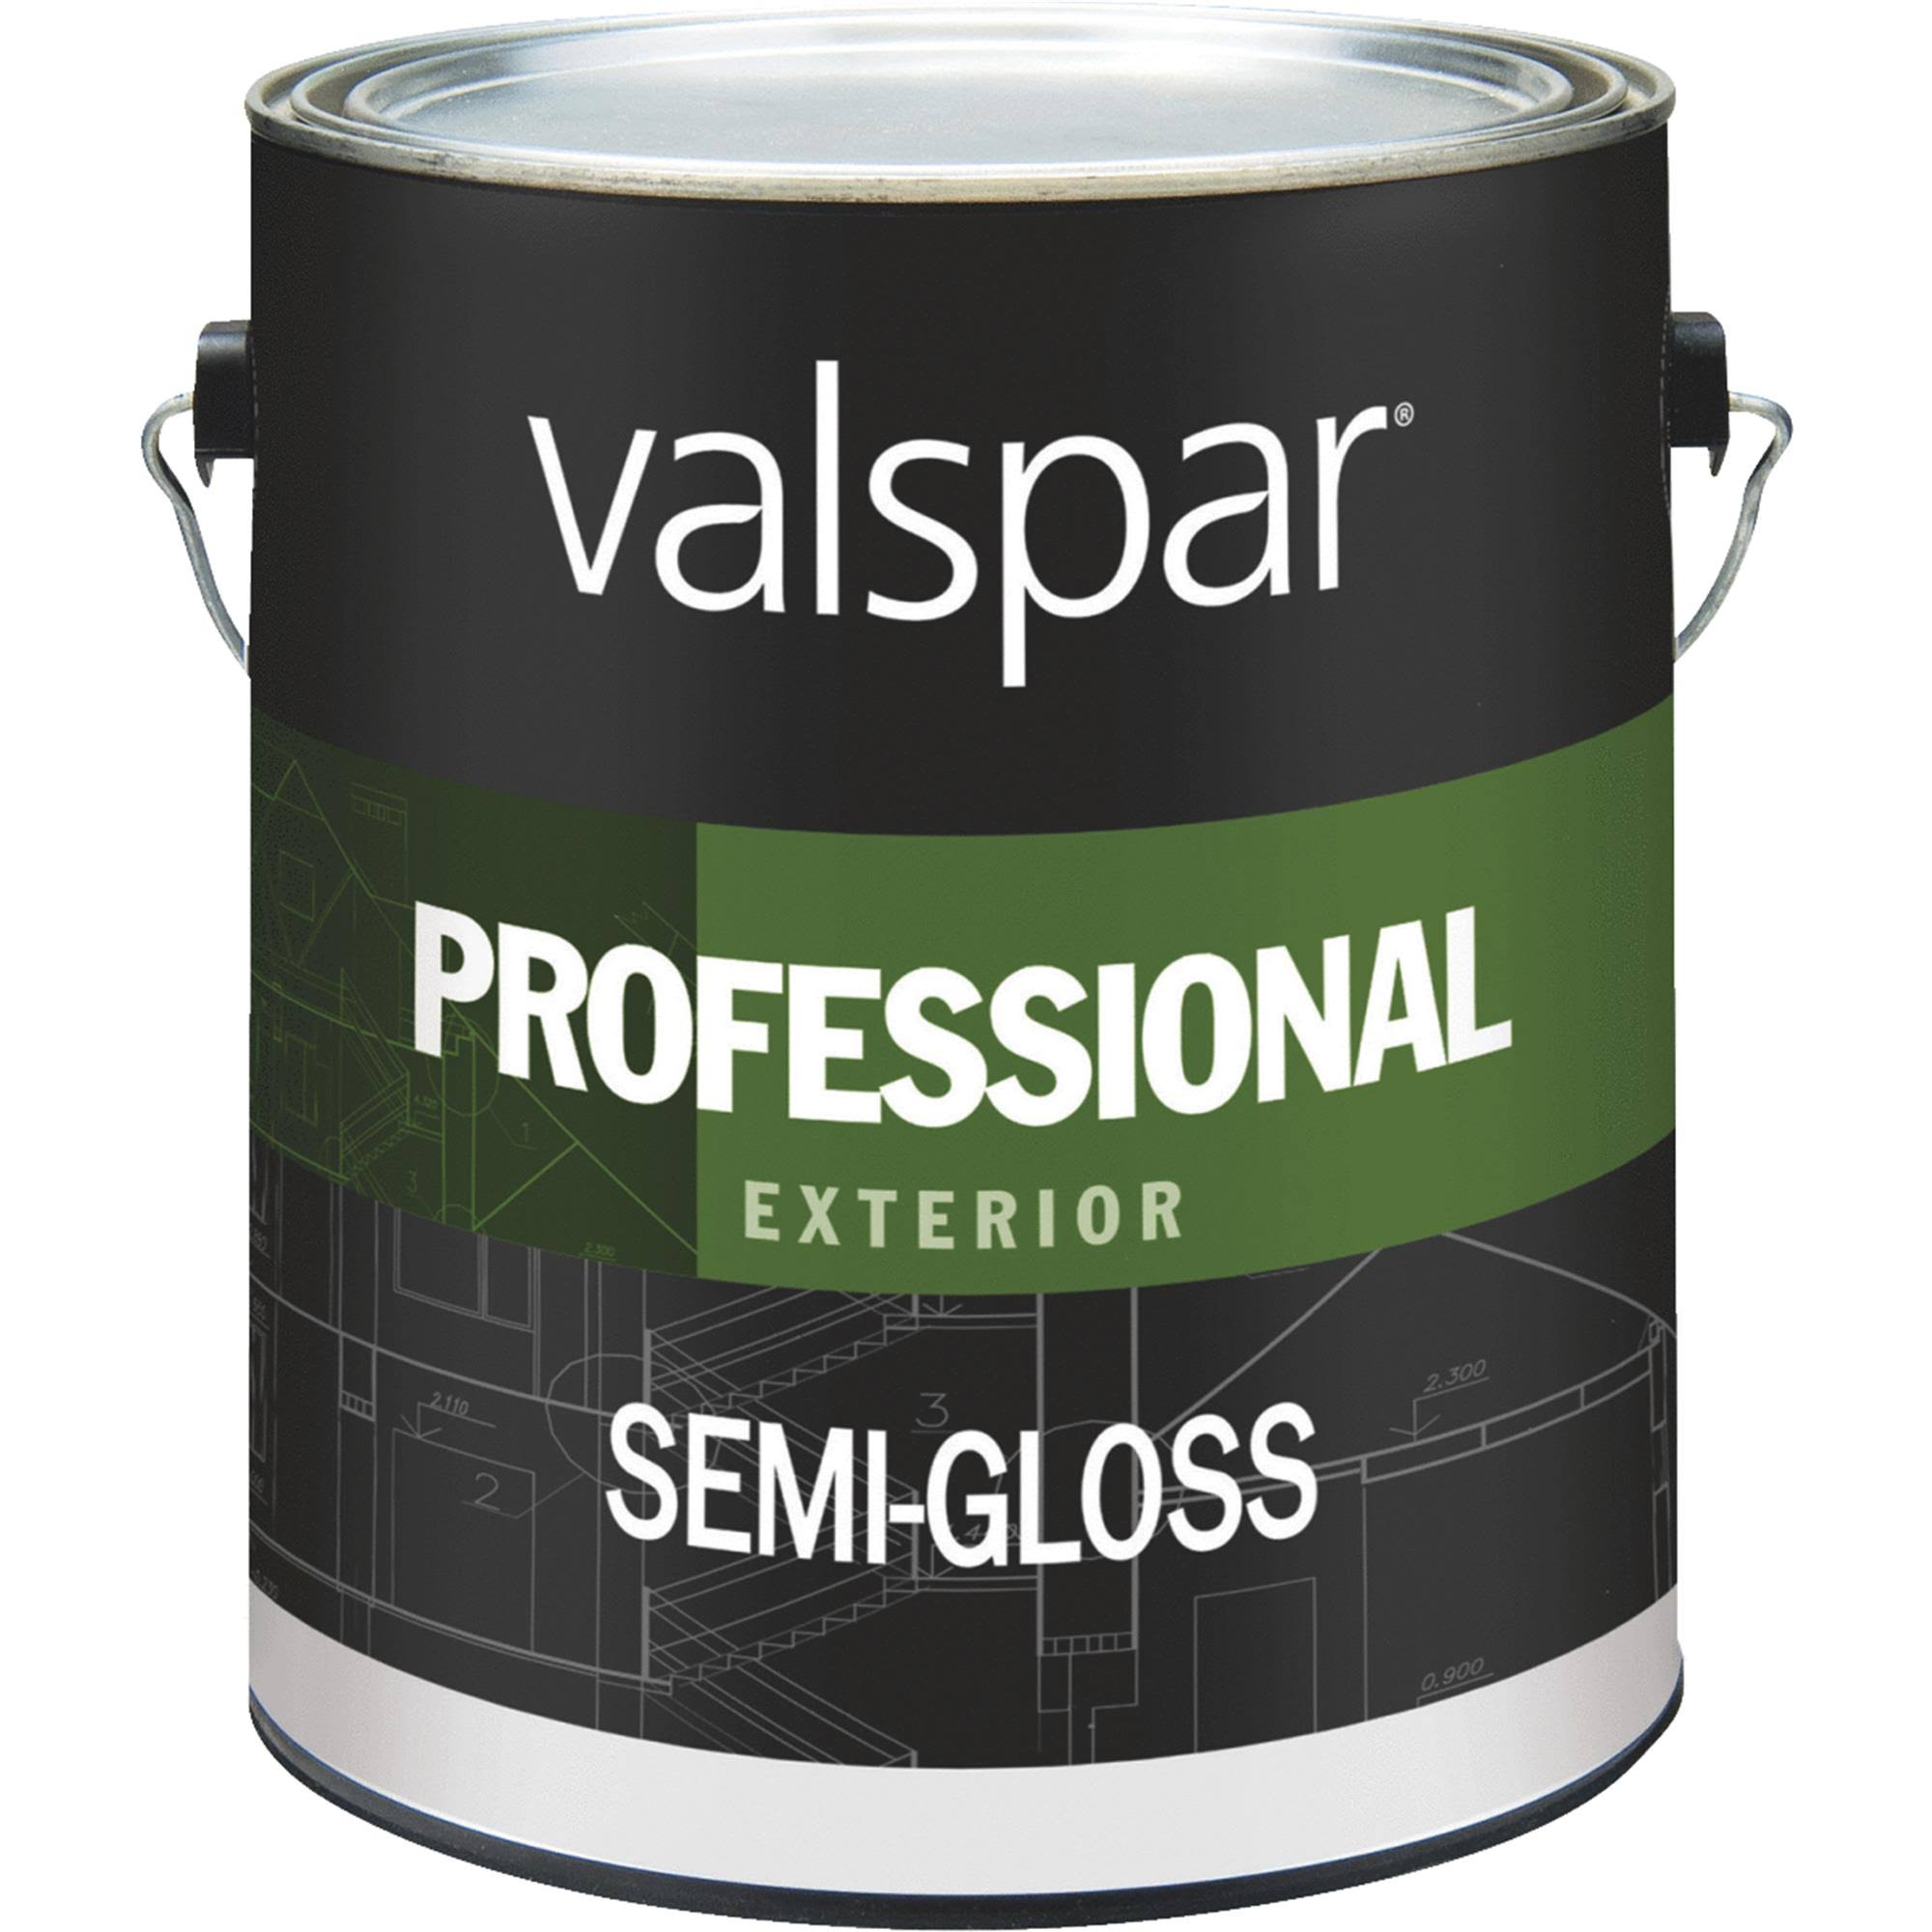 Valspar Professional Exterior Latex Paint - Semi-Gloss